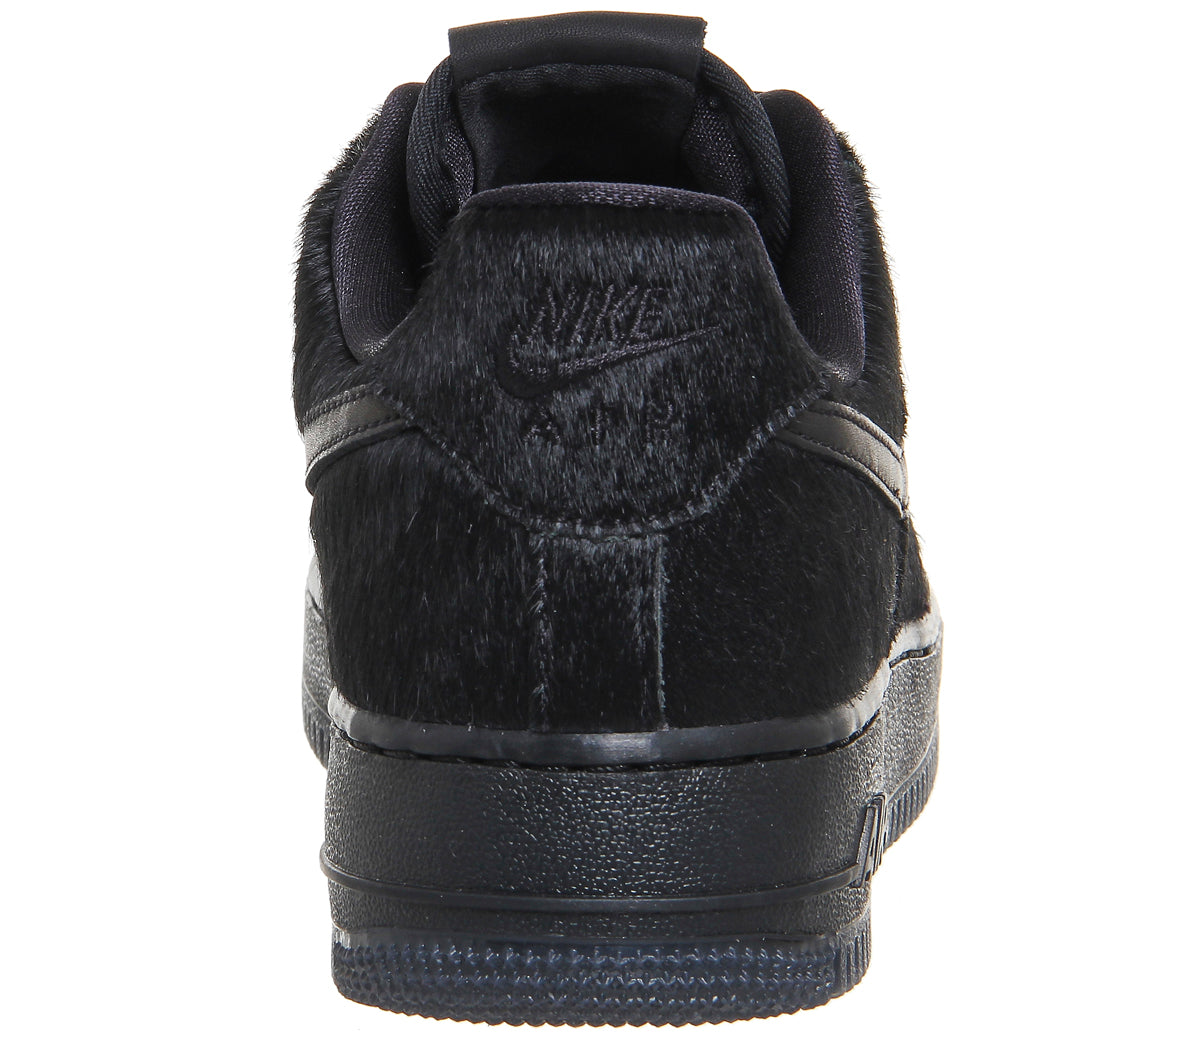 check out ffdd0 3bfb8 Nike Air Force 1 Wmns Black Pony Hair – Soldsoles